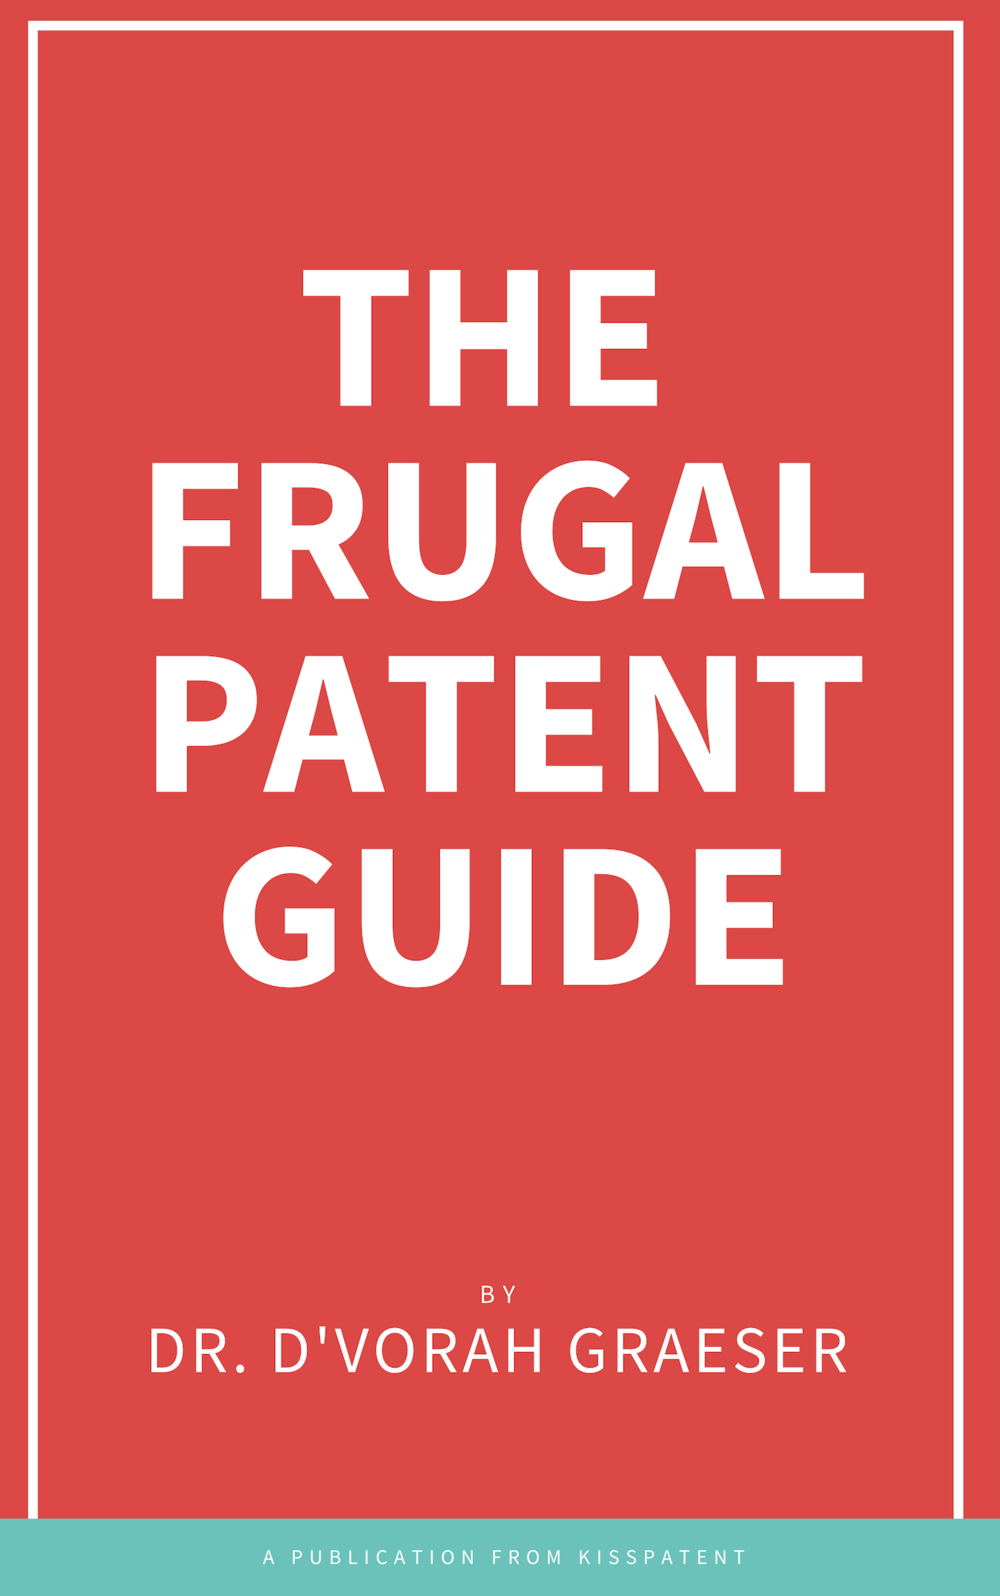 THE FRUGAL PATENT GUIDE.png